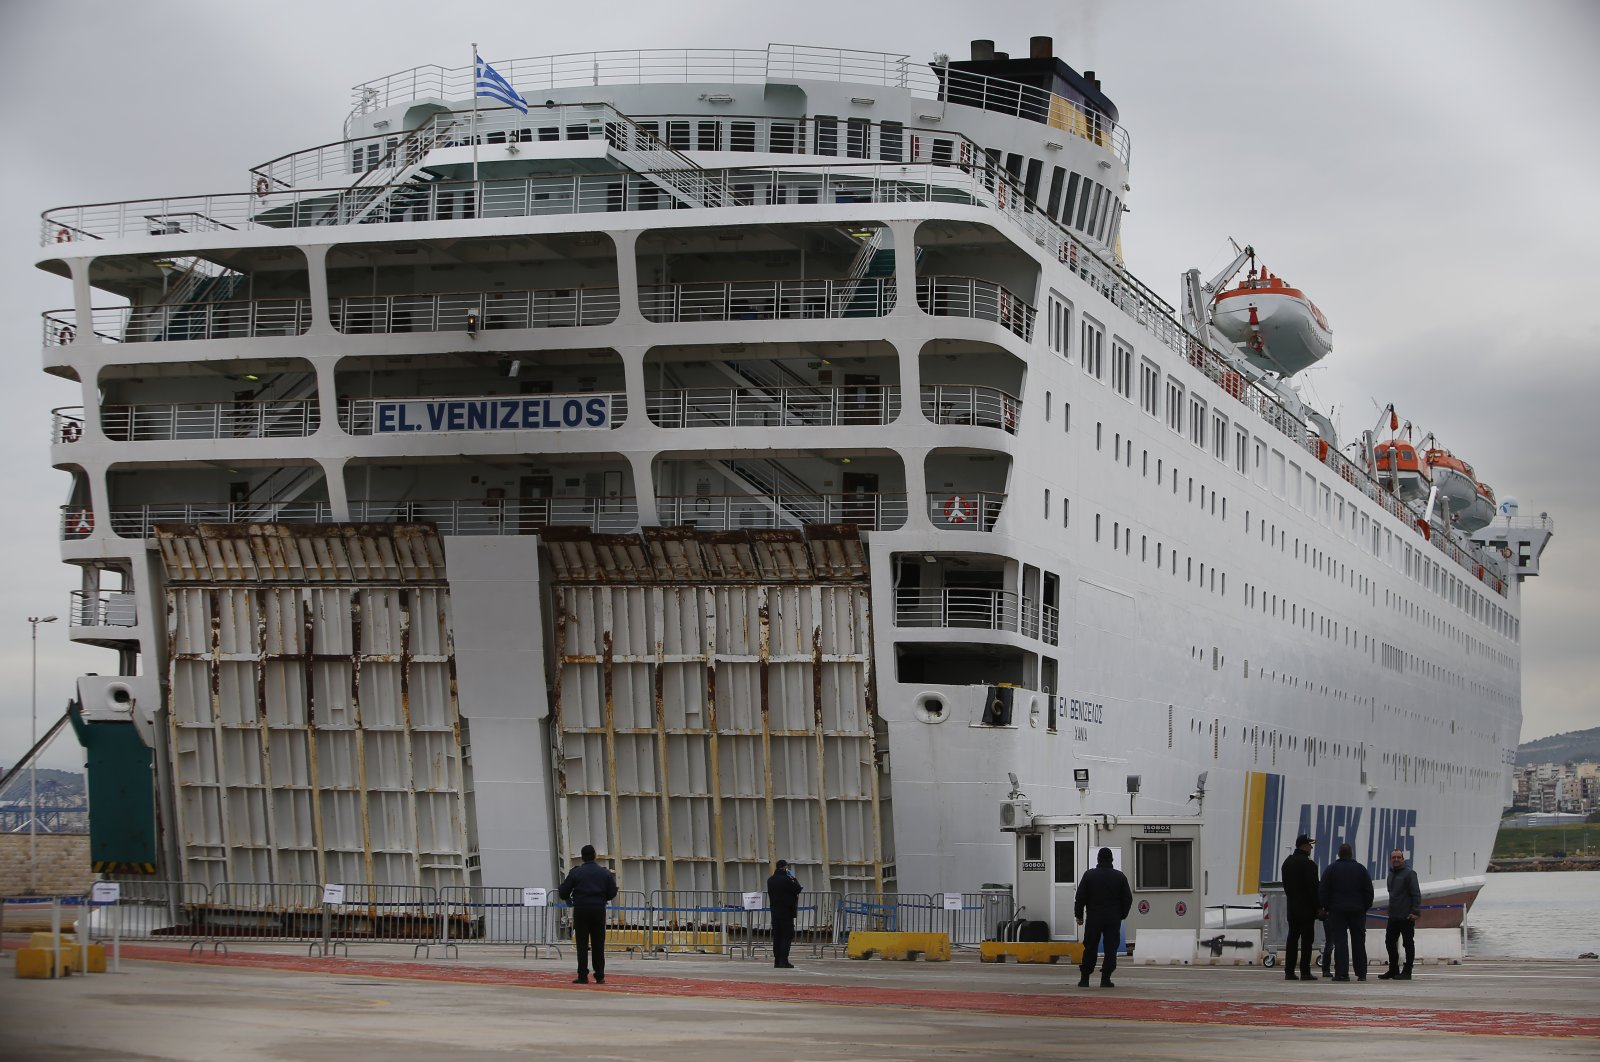 Police officers and health officials wait outside the ship, in the port of Piraeus, Greece, Friday, April 3, 2020. (AP Photo)